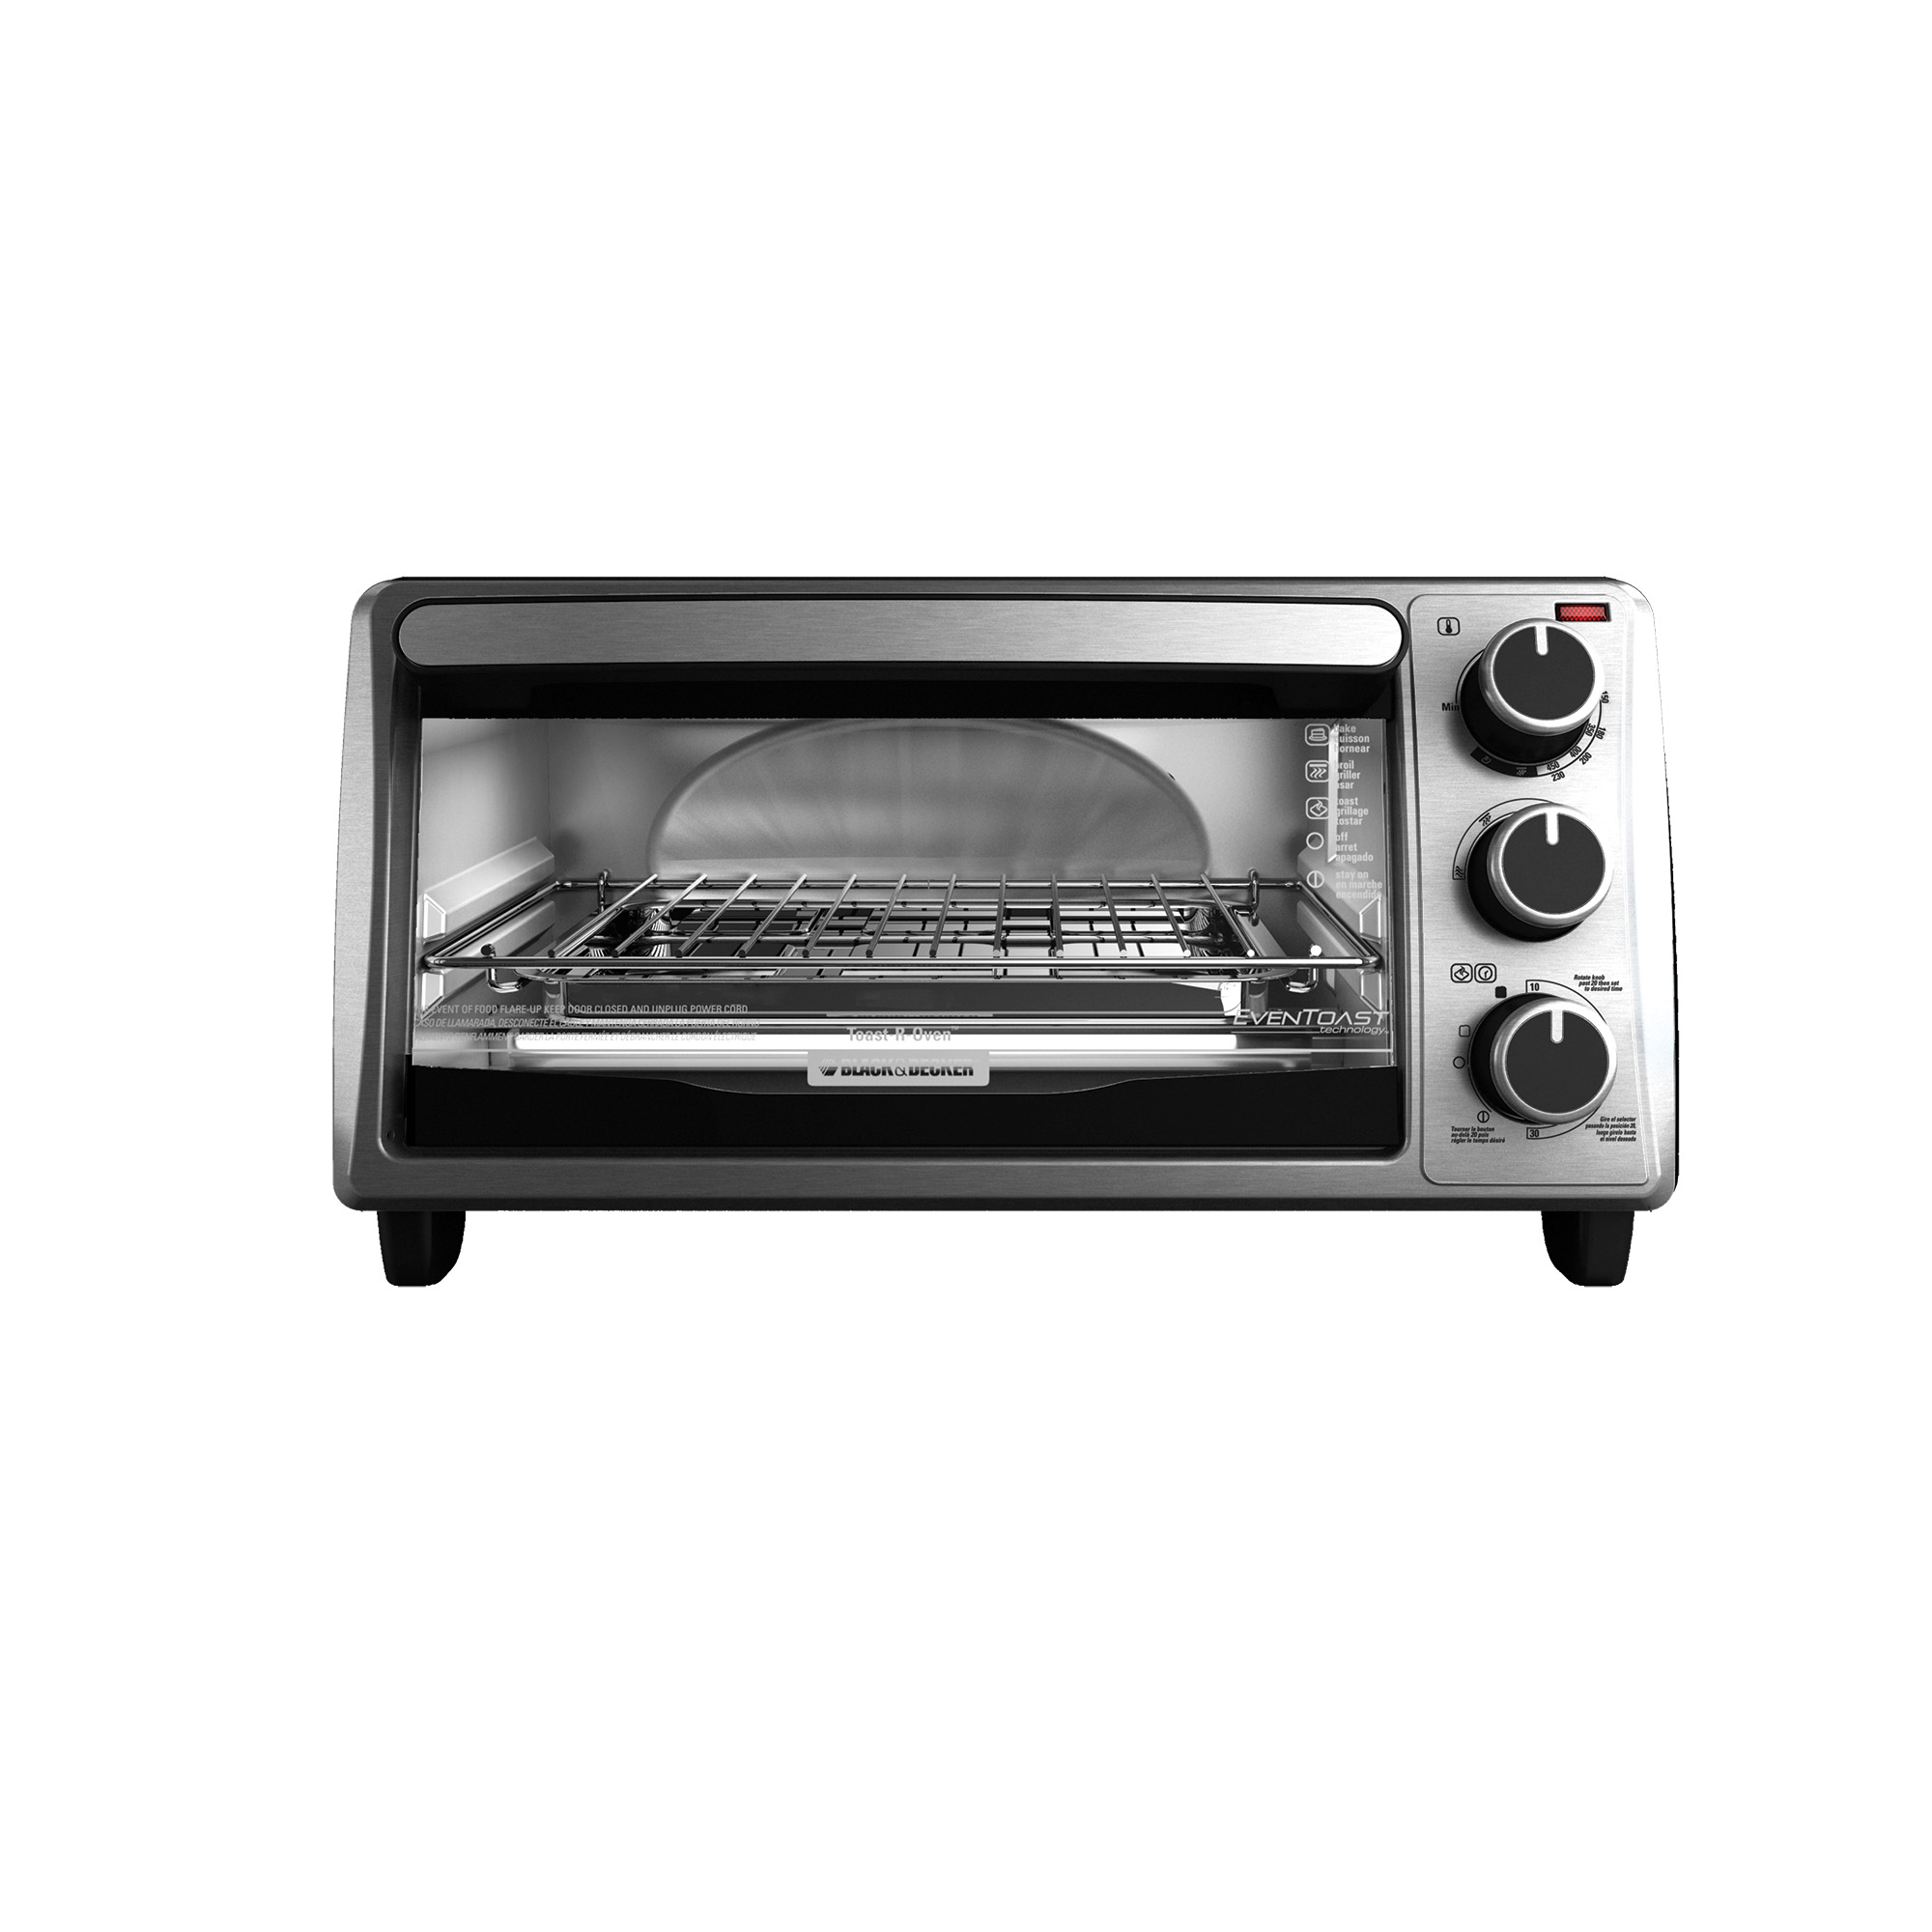 Buy a Black and Decker 4-Slice Toaster Oven | Countertop ...